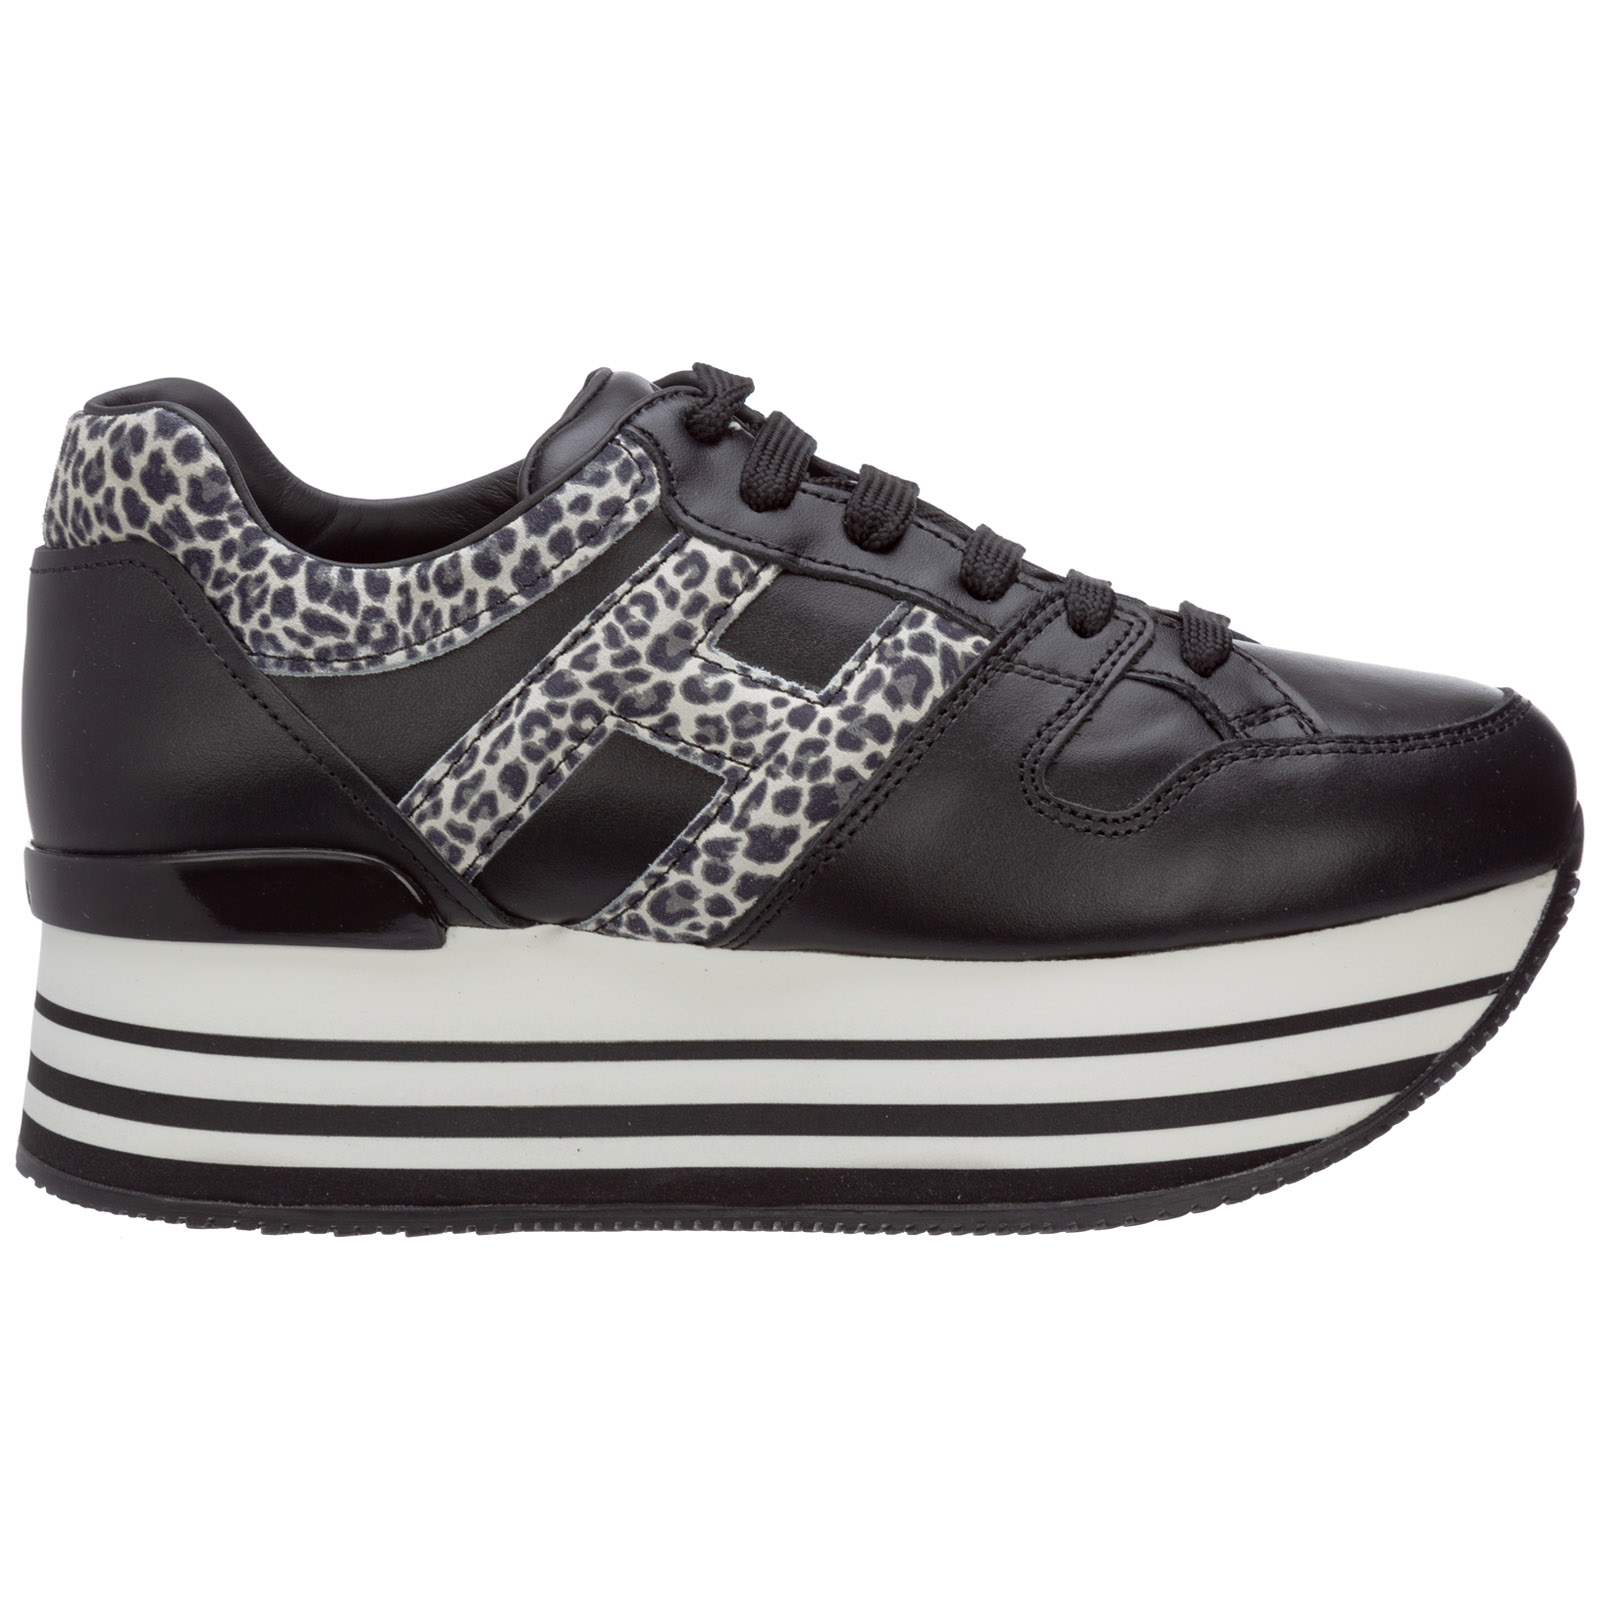 Hogan Women's Shoes Leather Trainers Sneakers Maxi H222 In Black ...